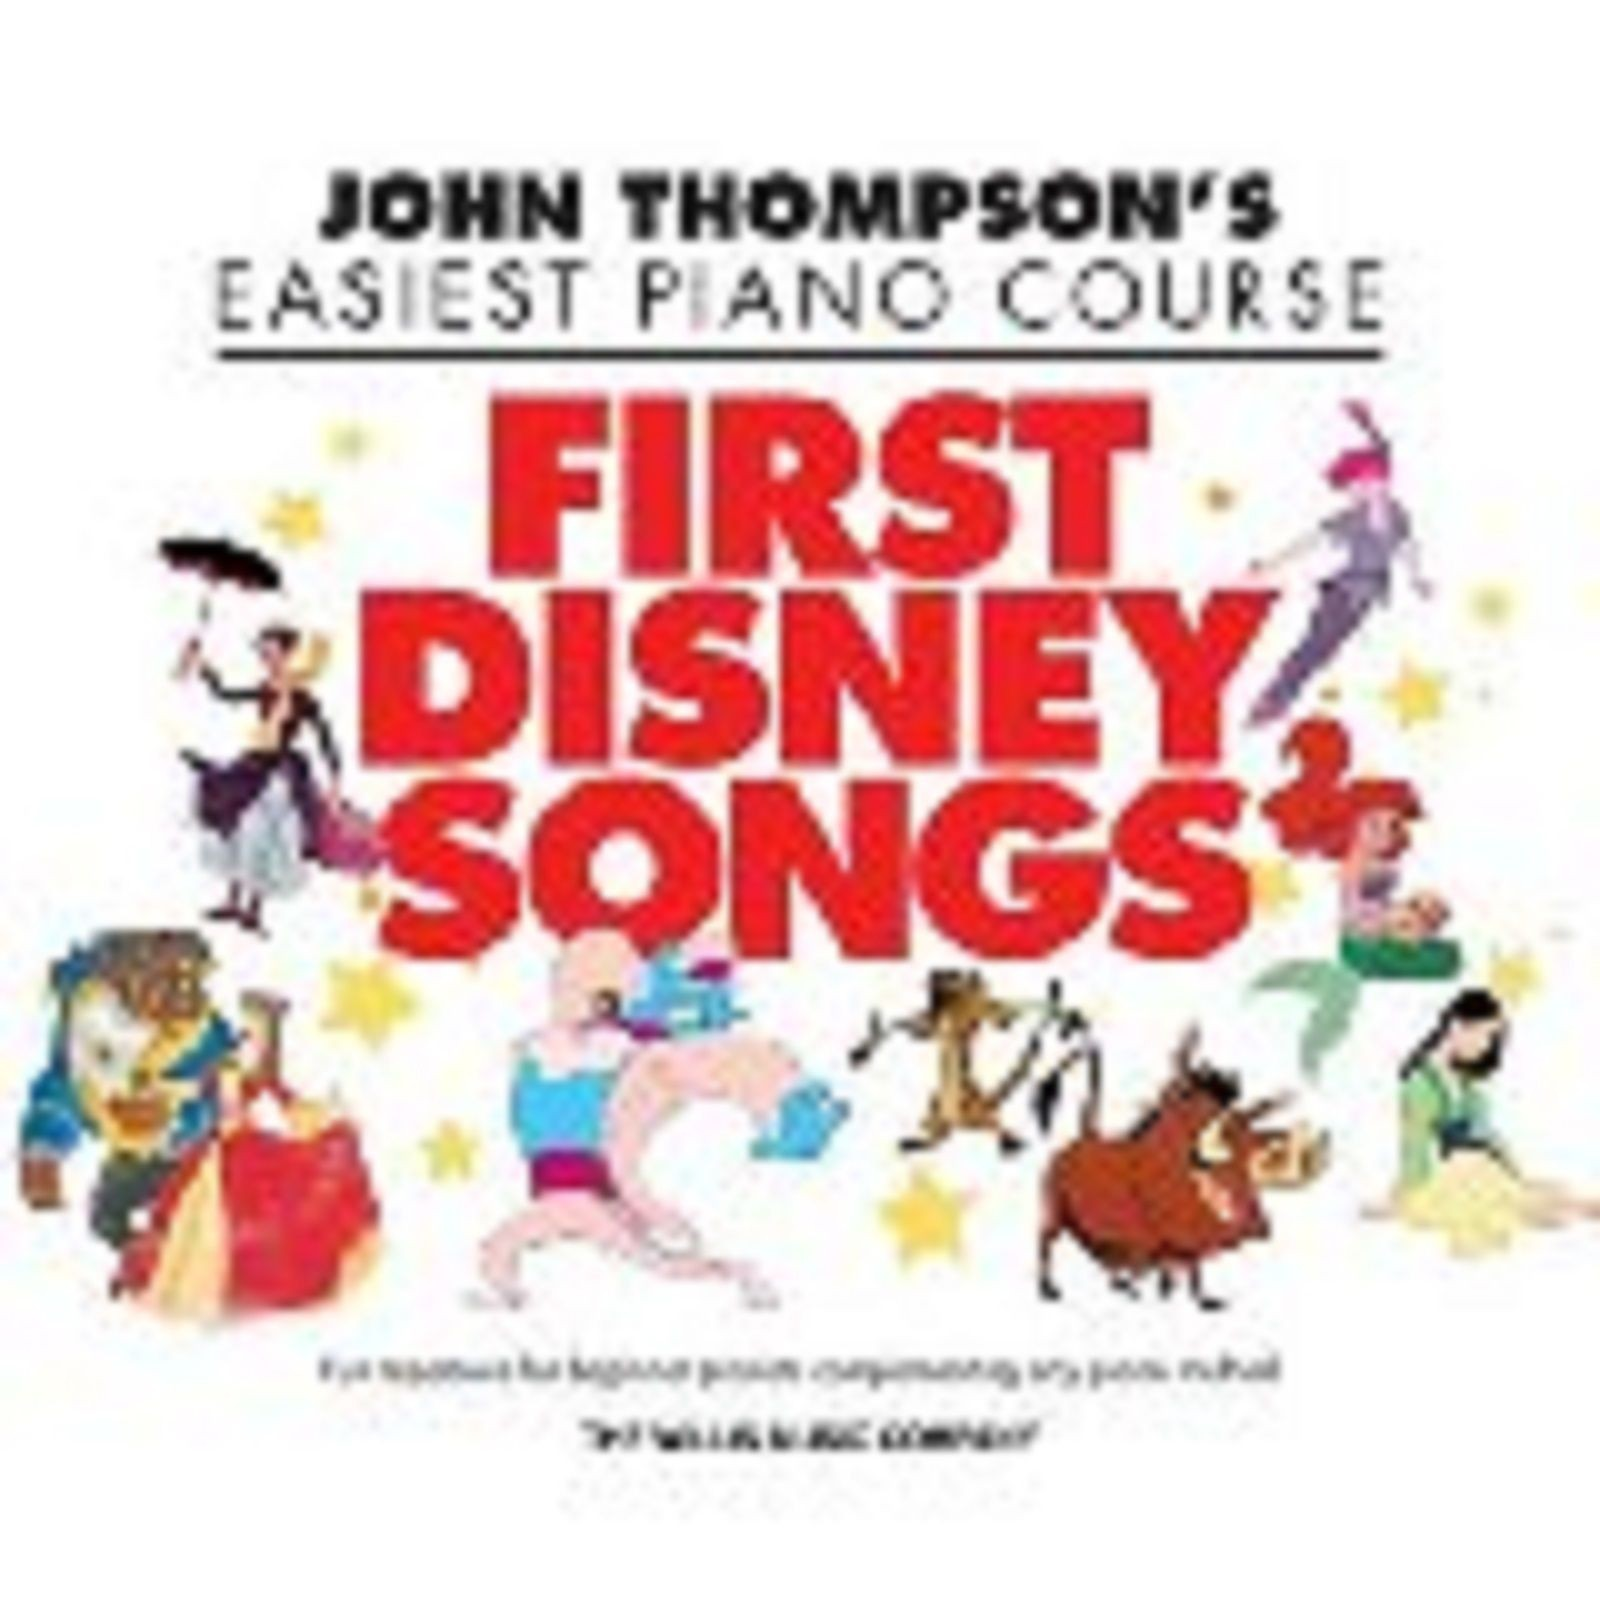 John Thompson's Easiest Piano Course First Disney Songs Film Book Thompson S19